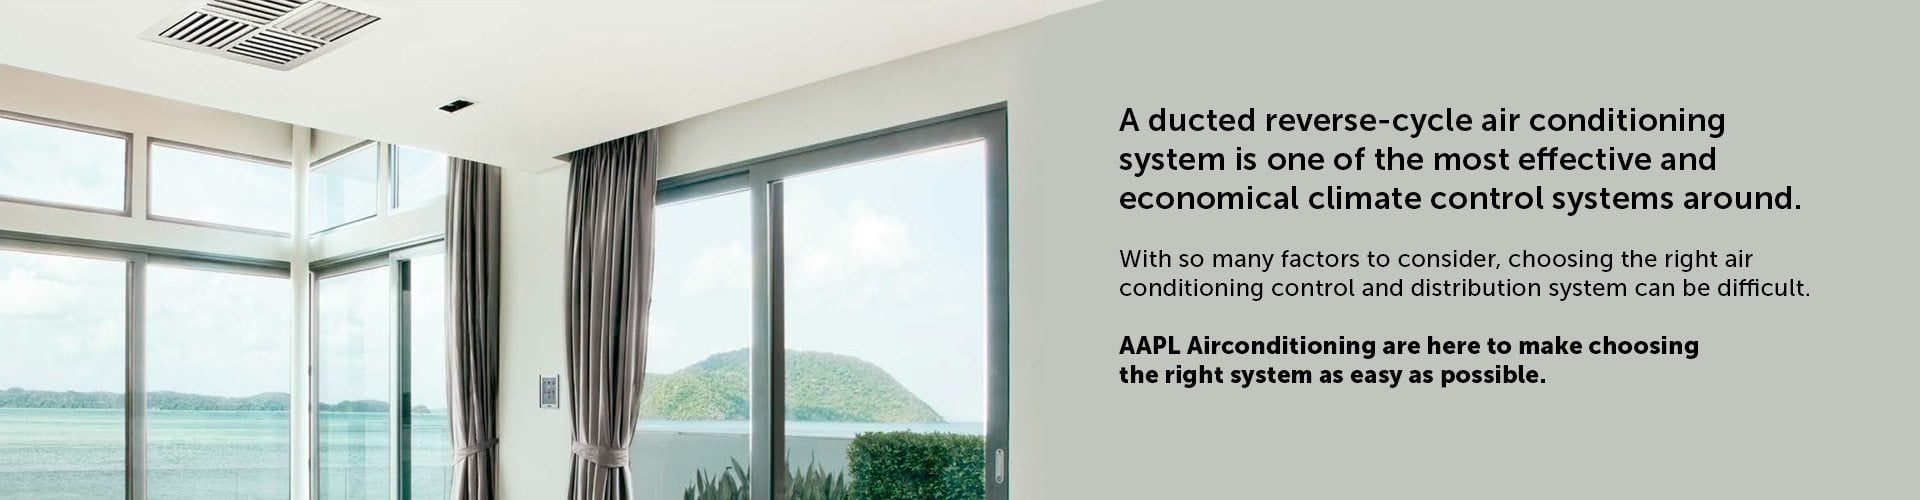 ducted reverse cycle air conditioning with AAPL